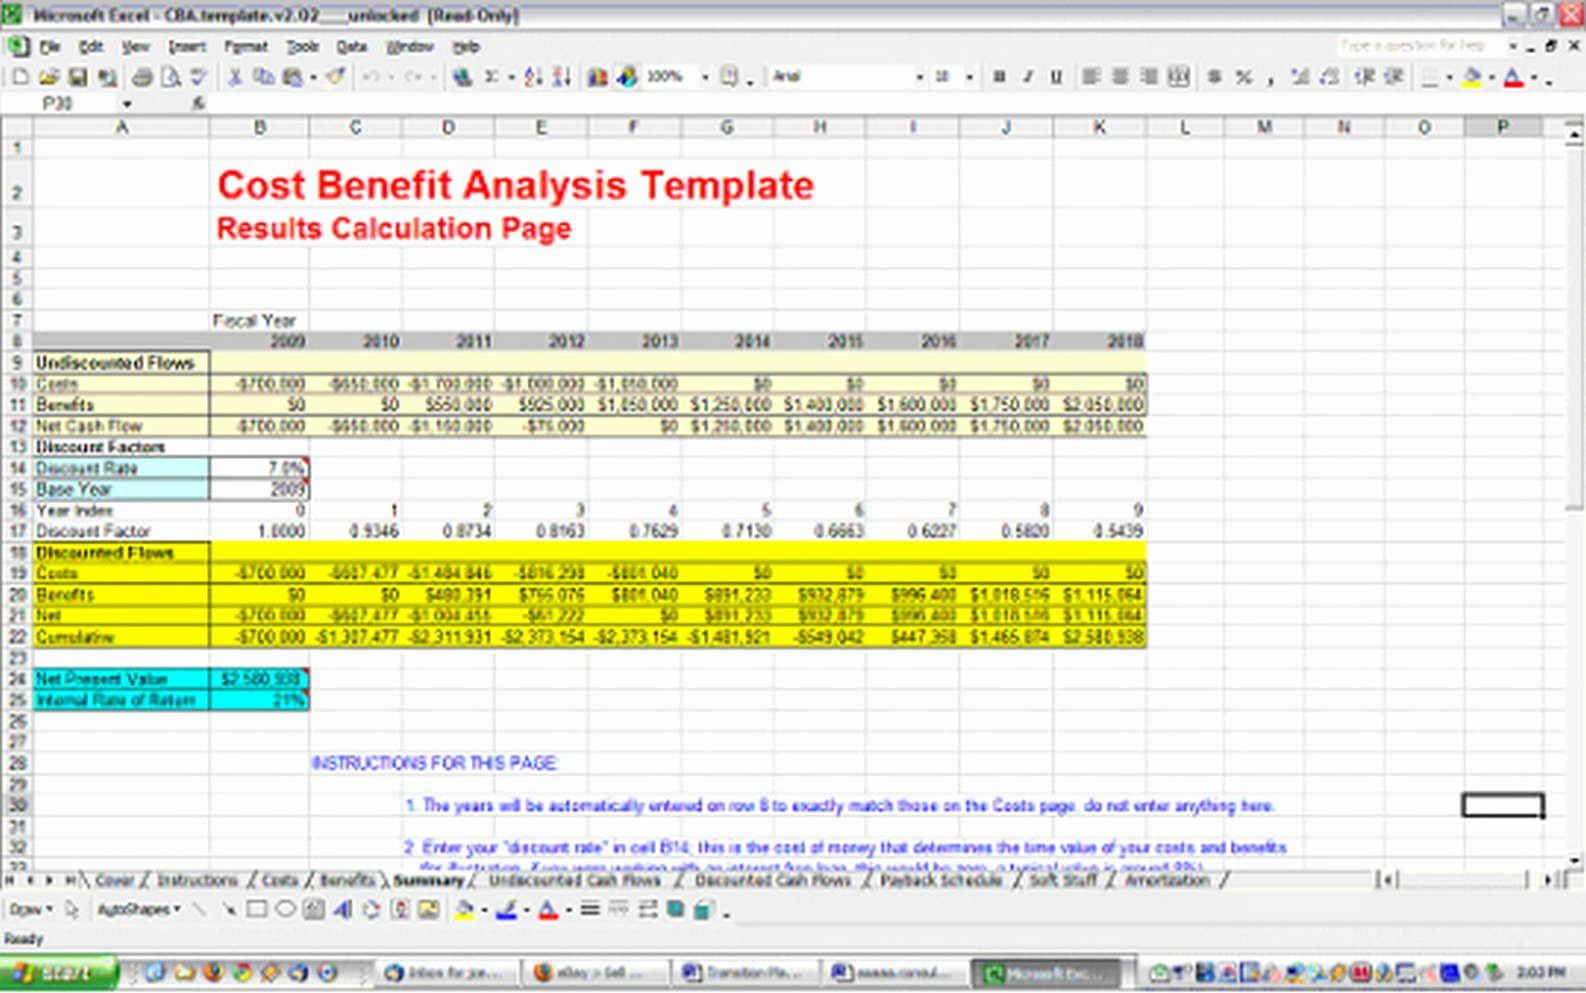 Free Cost Benefit Analysis Template Excel Excel Templates Spreadsheet Template Templates Cost benefit analysis template excel